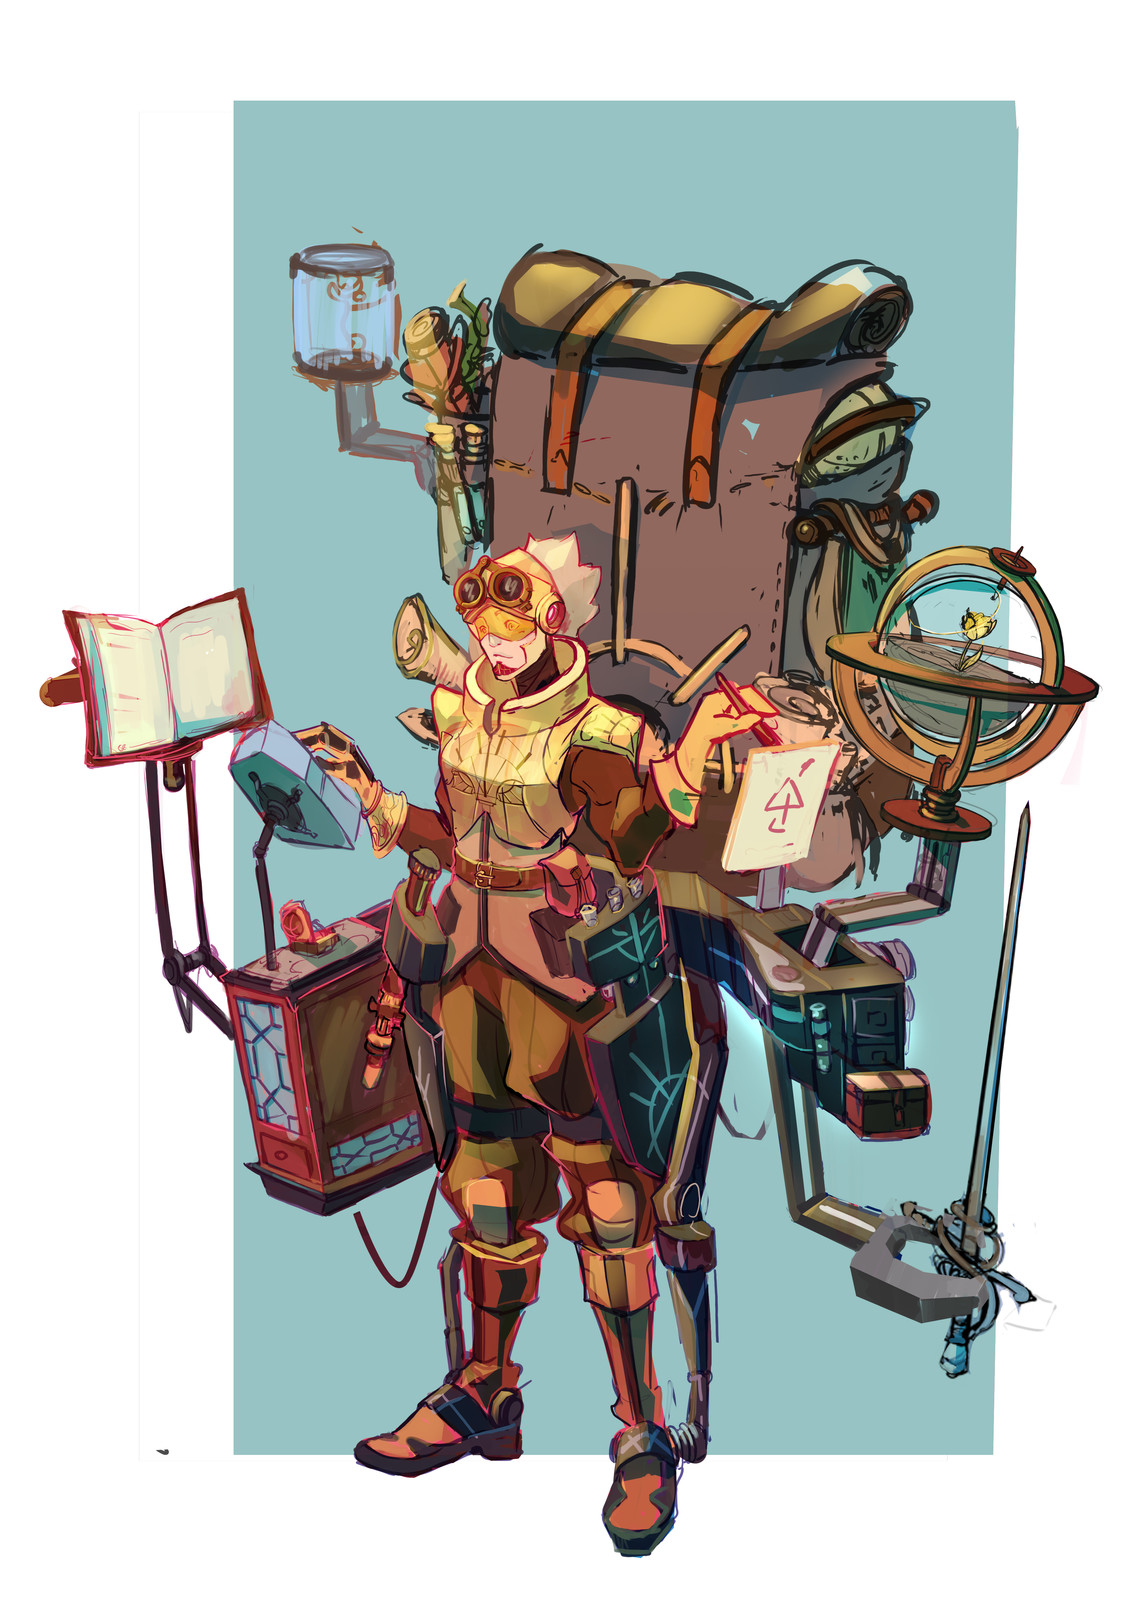 Ranger n°1 : Native nerd and expert, here to collect a maximum of data. Thanks for that exoskeleton helping them carrying all of that stuff